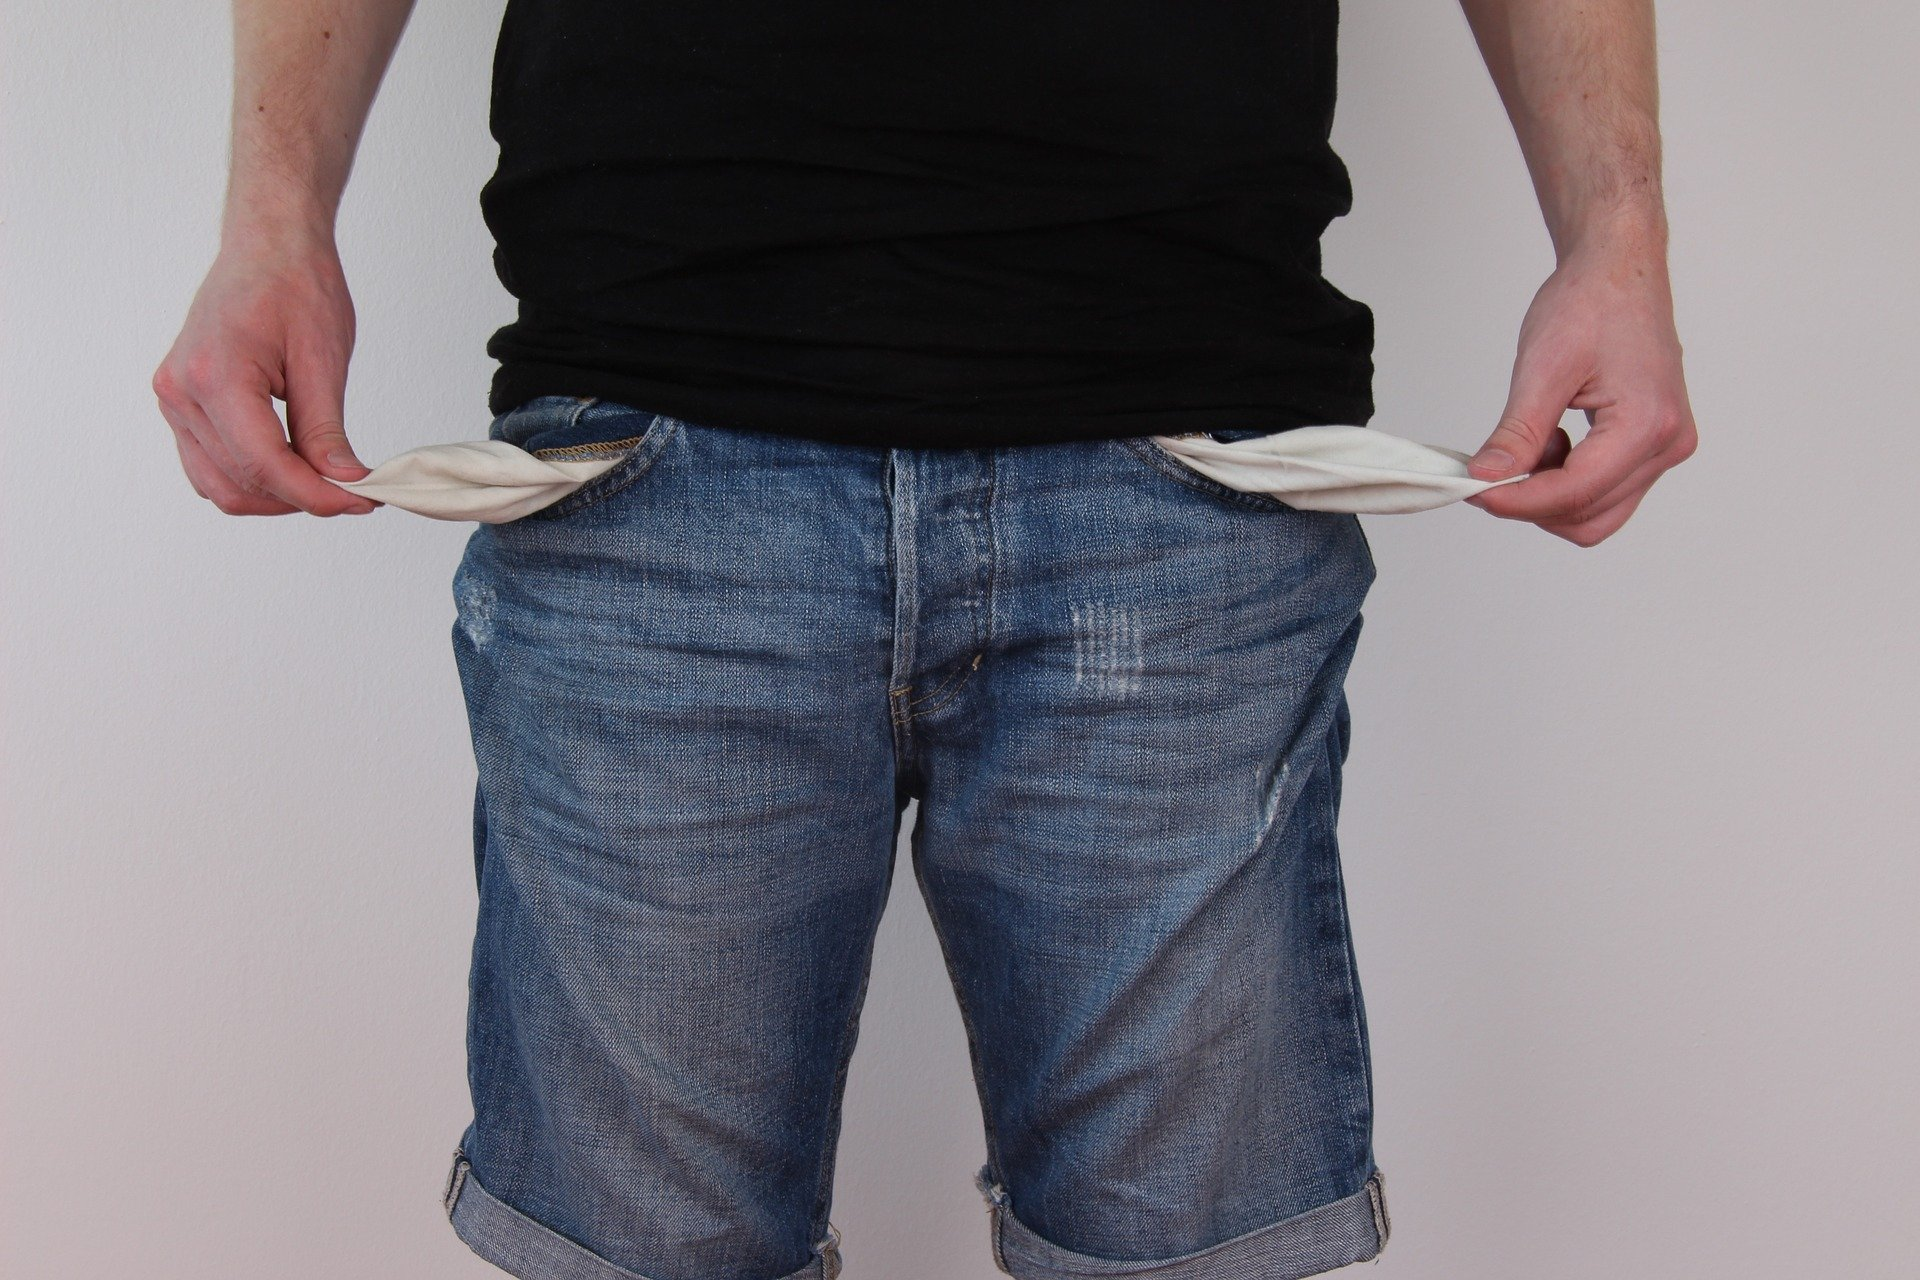 A broke young man shows his empty pockets.   Source: Pixabay.